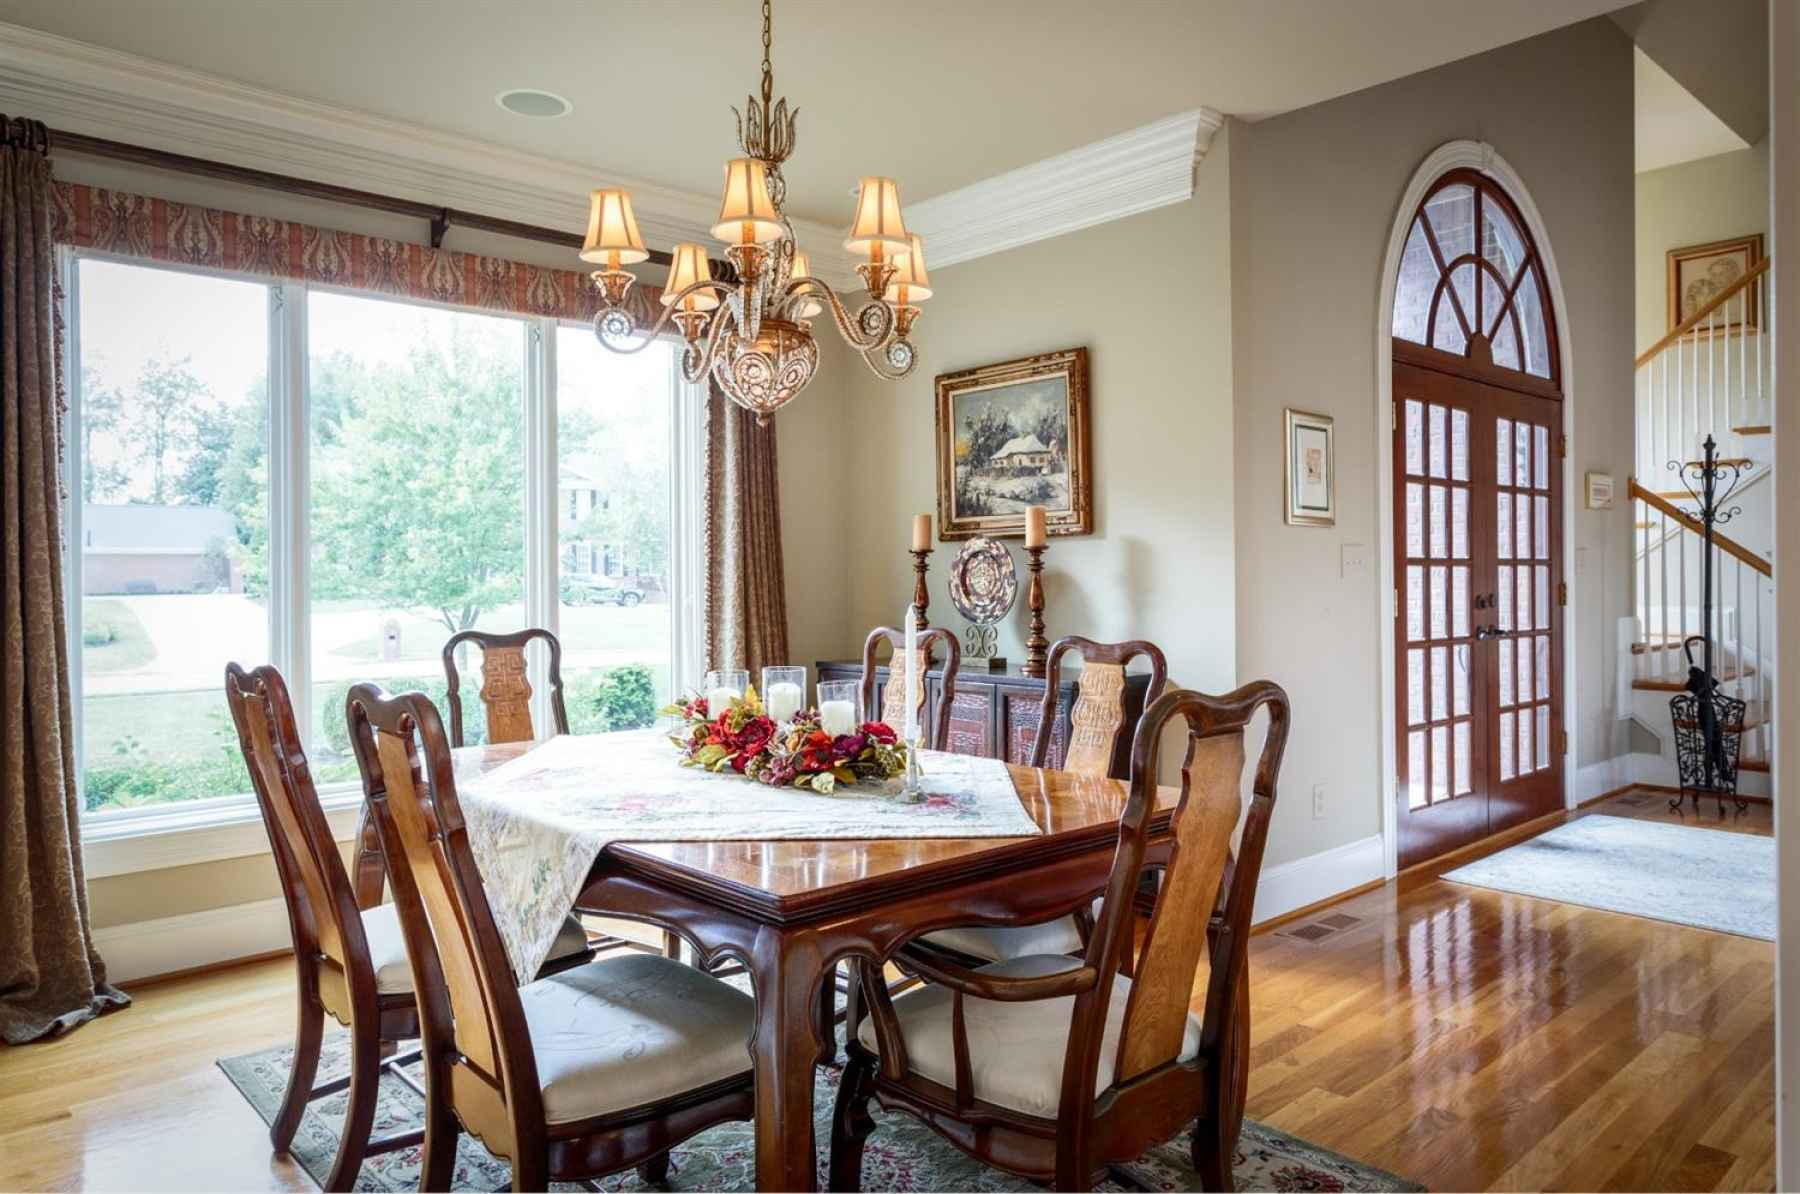 Spacious Dining Room with large windows for lot of natural light.